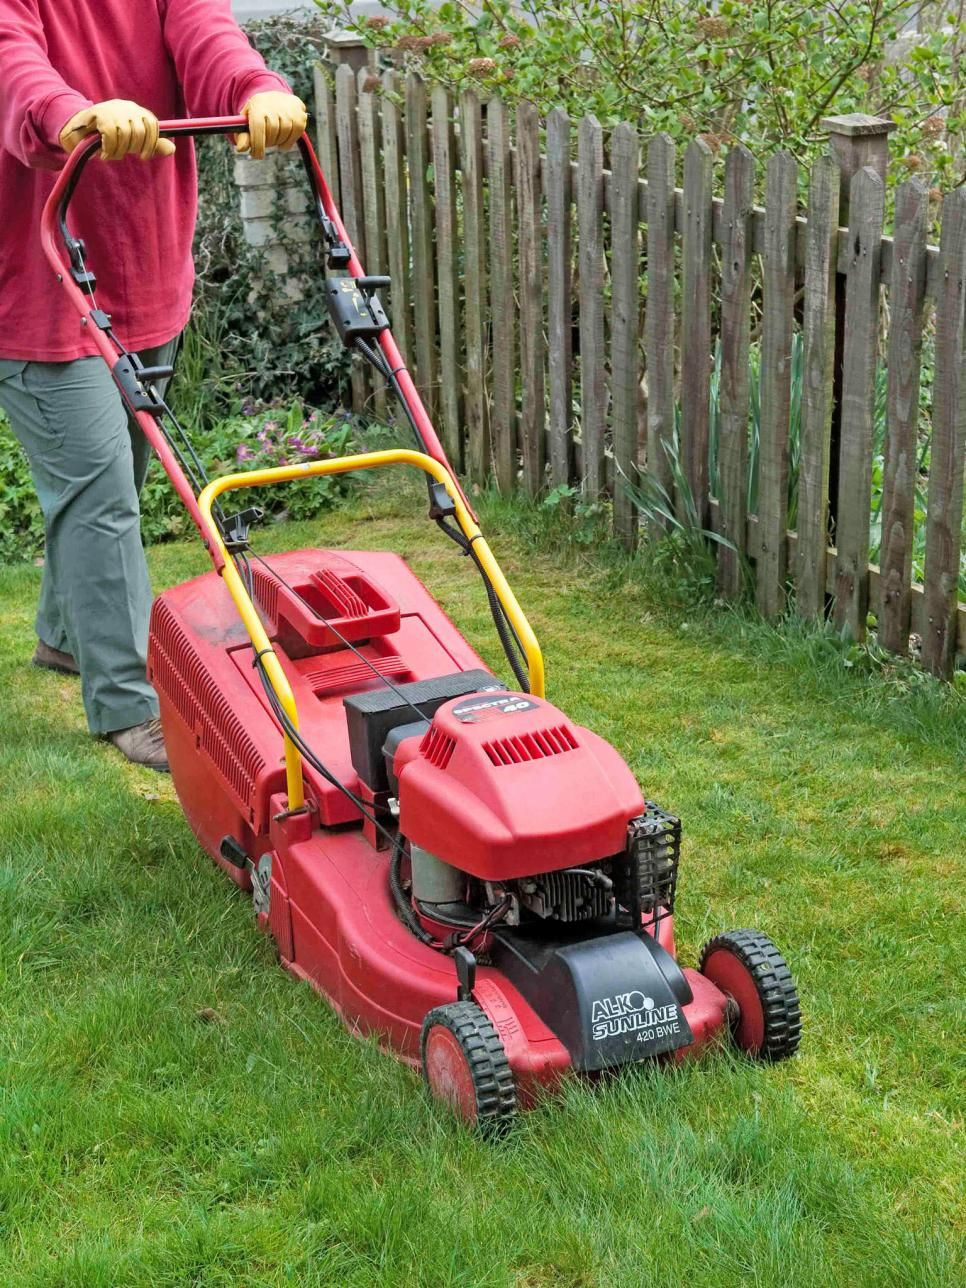 13 Mowing Tips For A Healthy Lawn Http Bit Ly 1nilomj Garden Lawncare Life